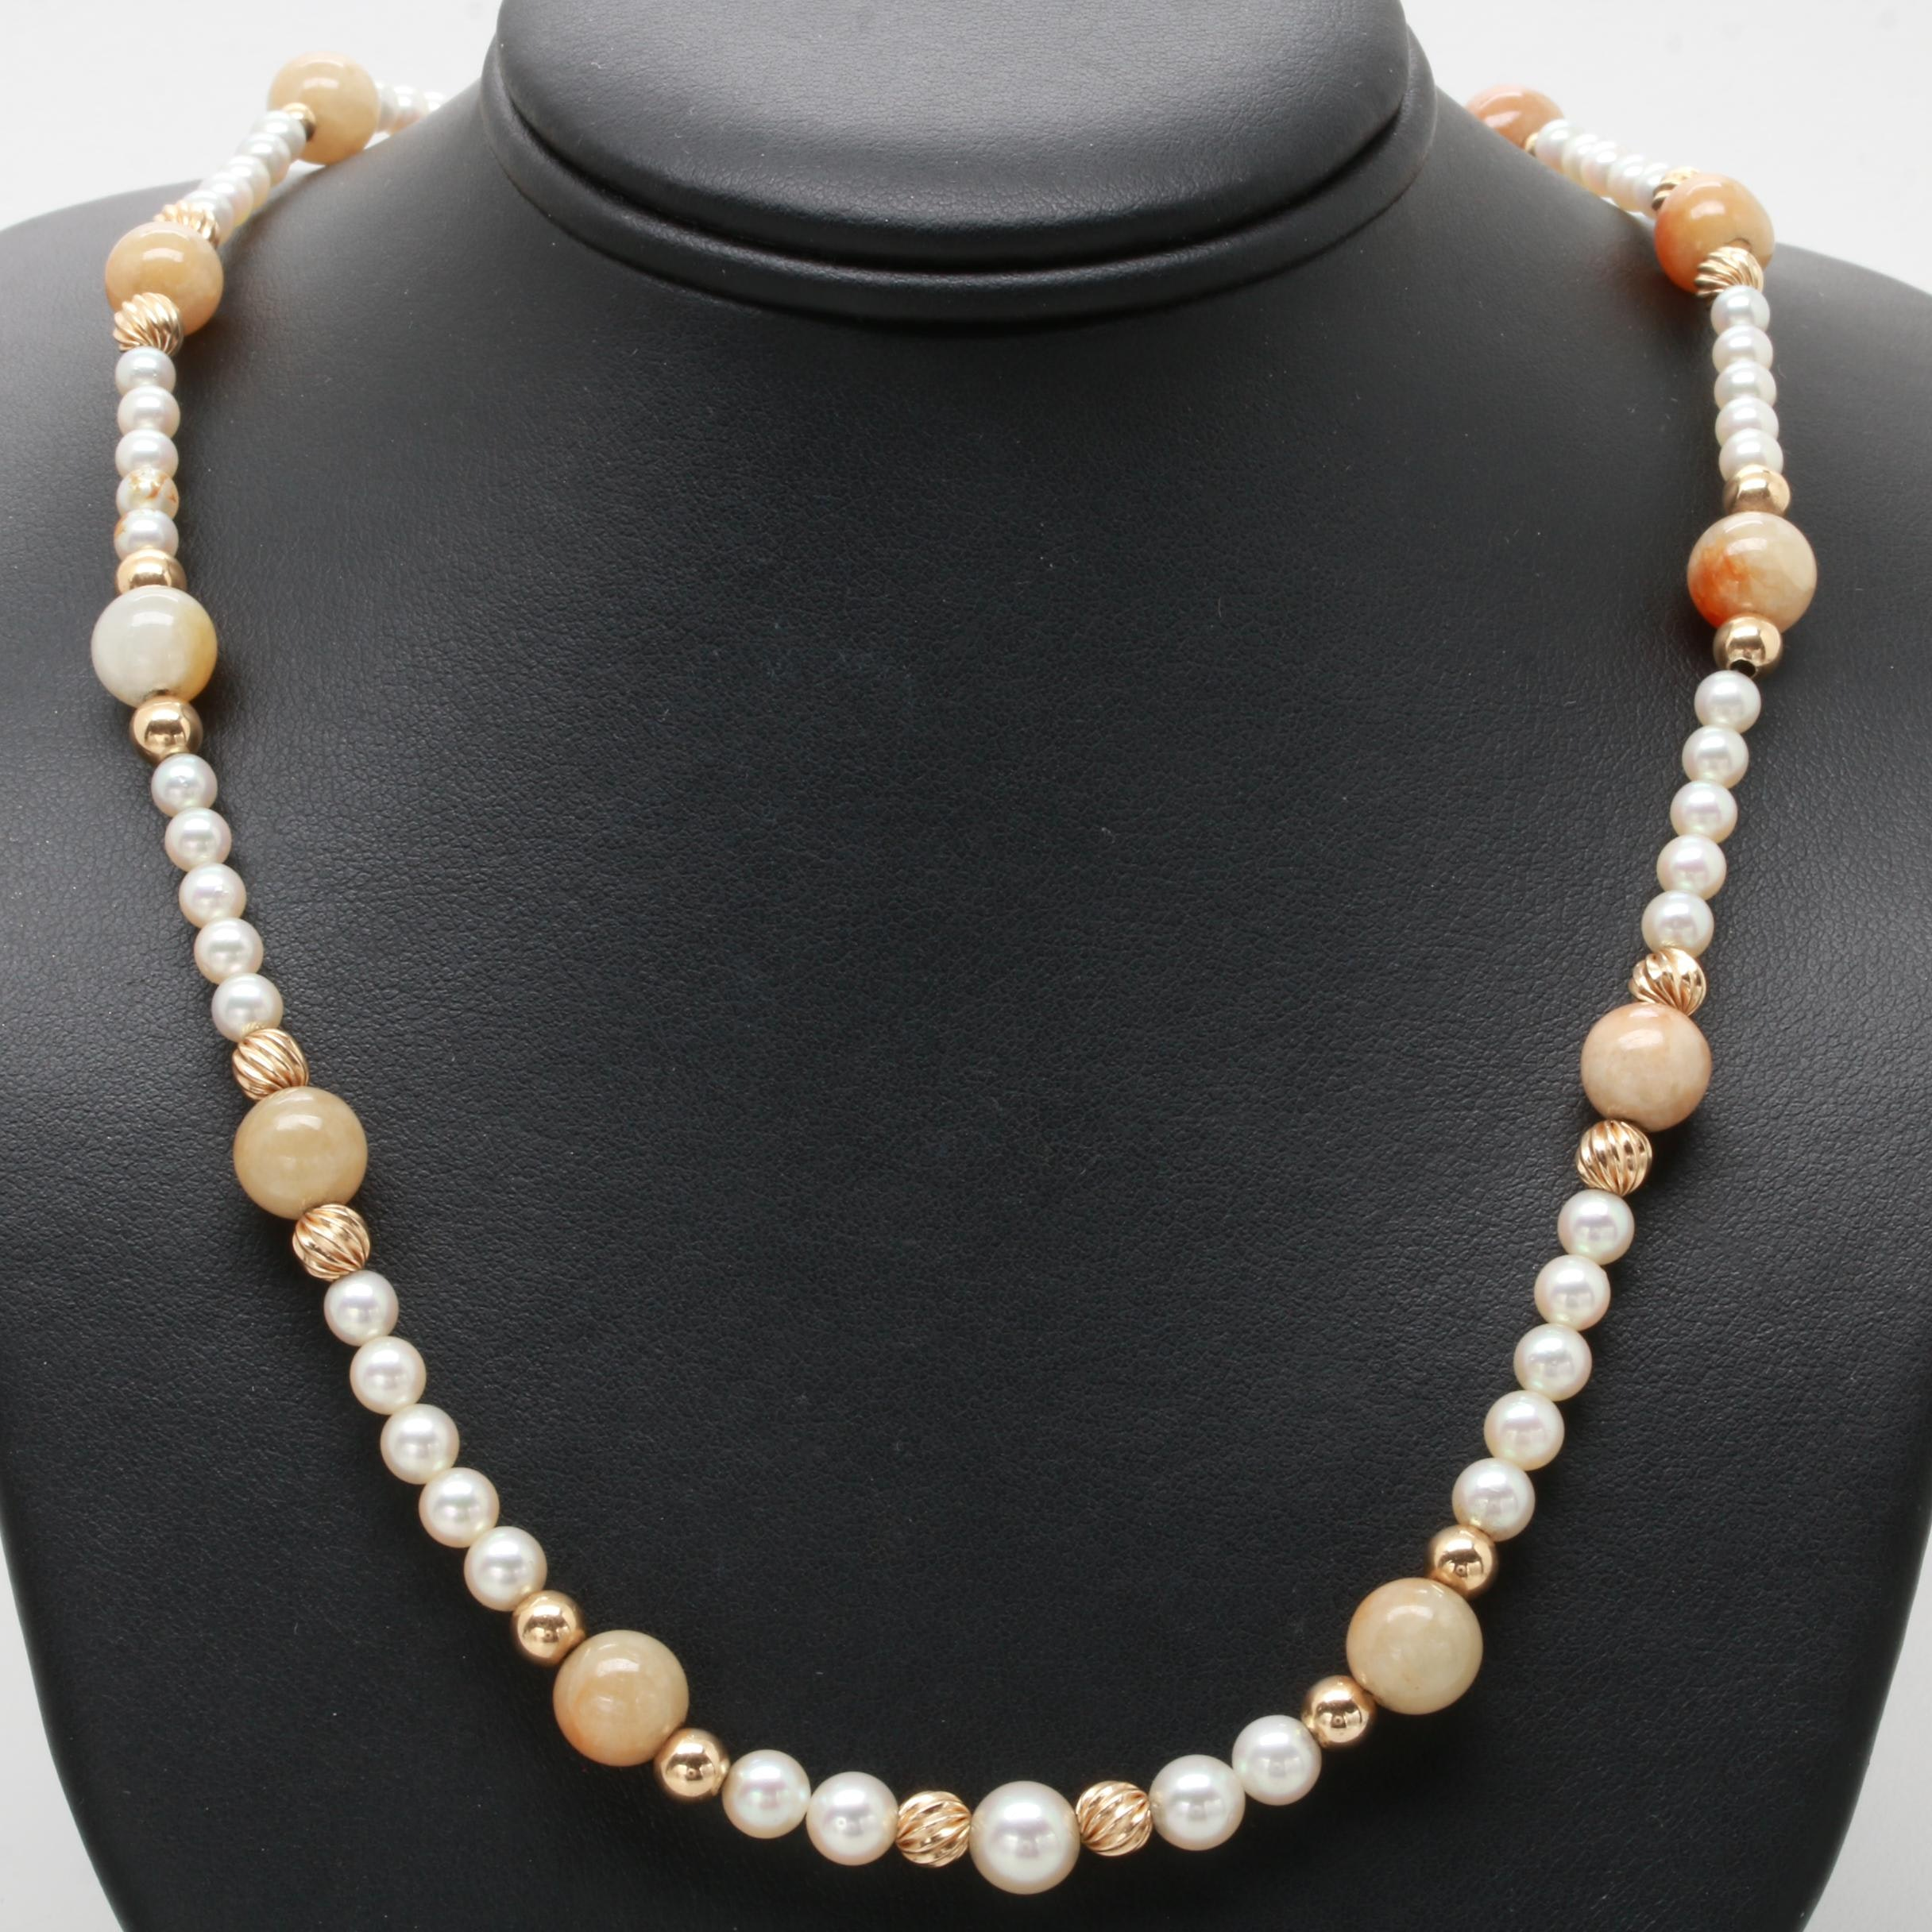 14K Yellow Gold Jadeite and Cultured Pearl Necklace